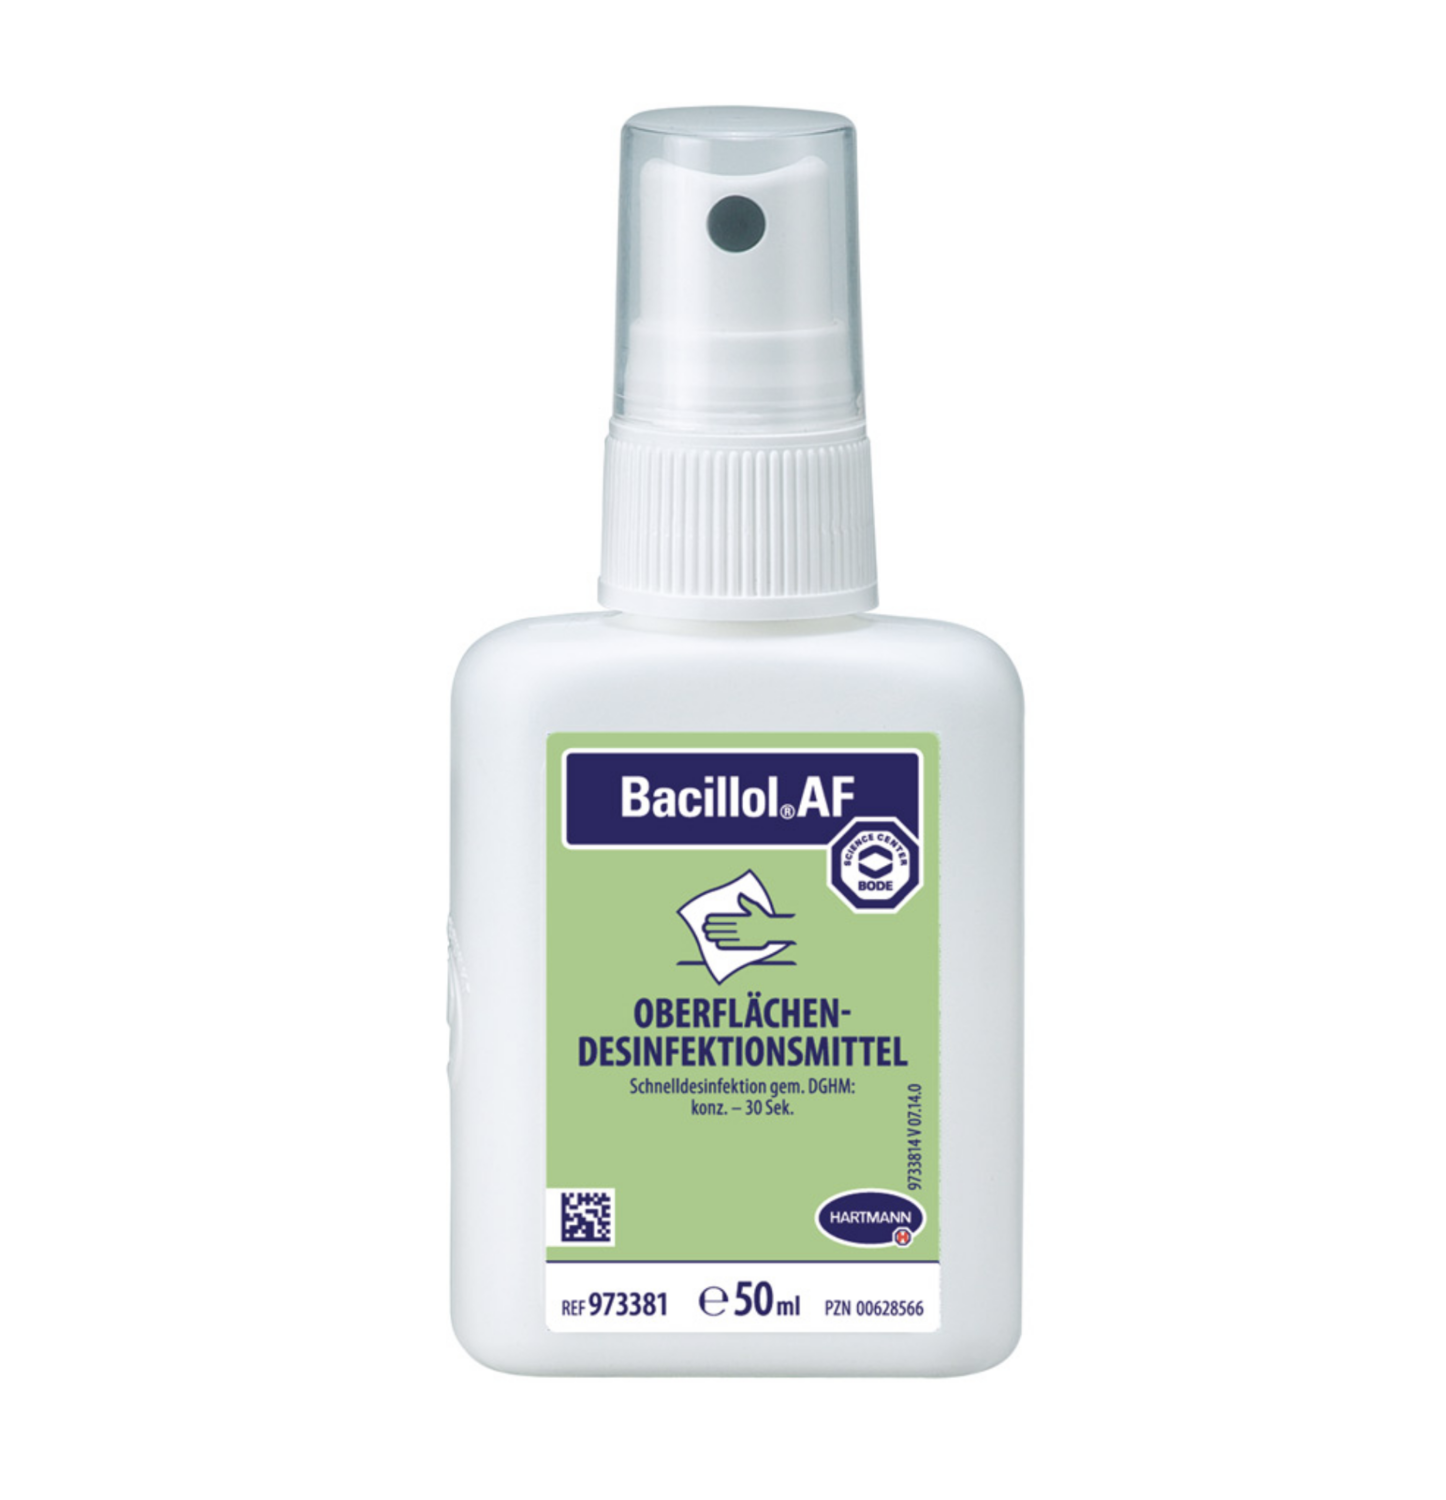 Bacillol plus surface disinfection, 50ml with pomp